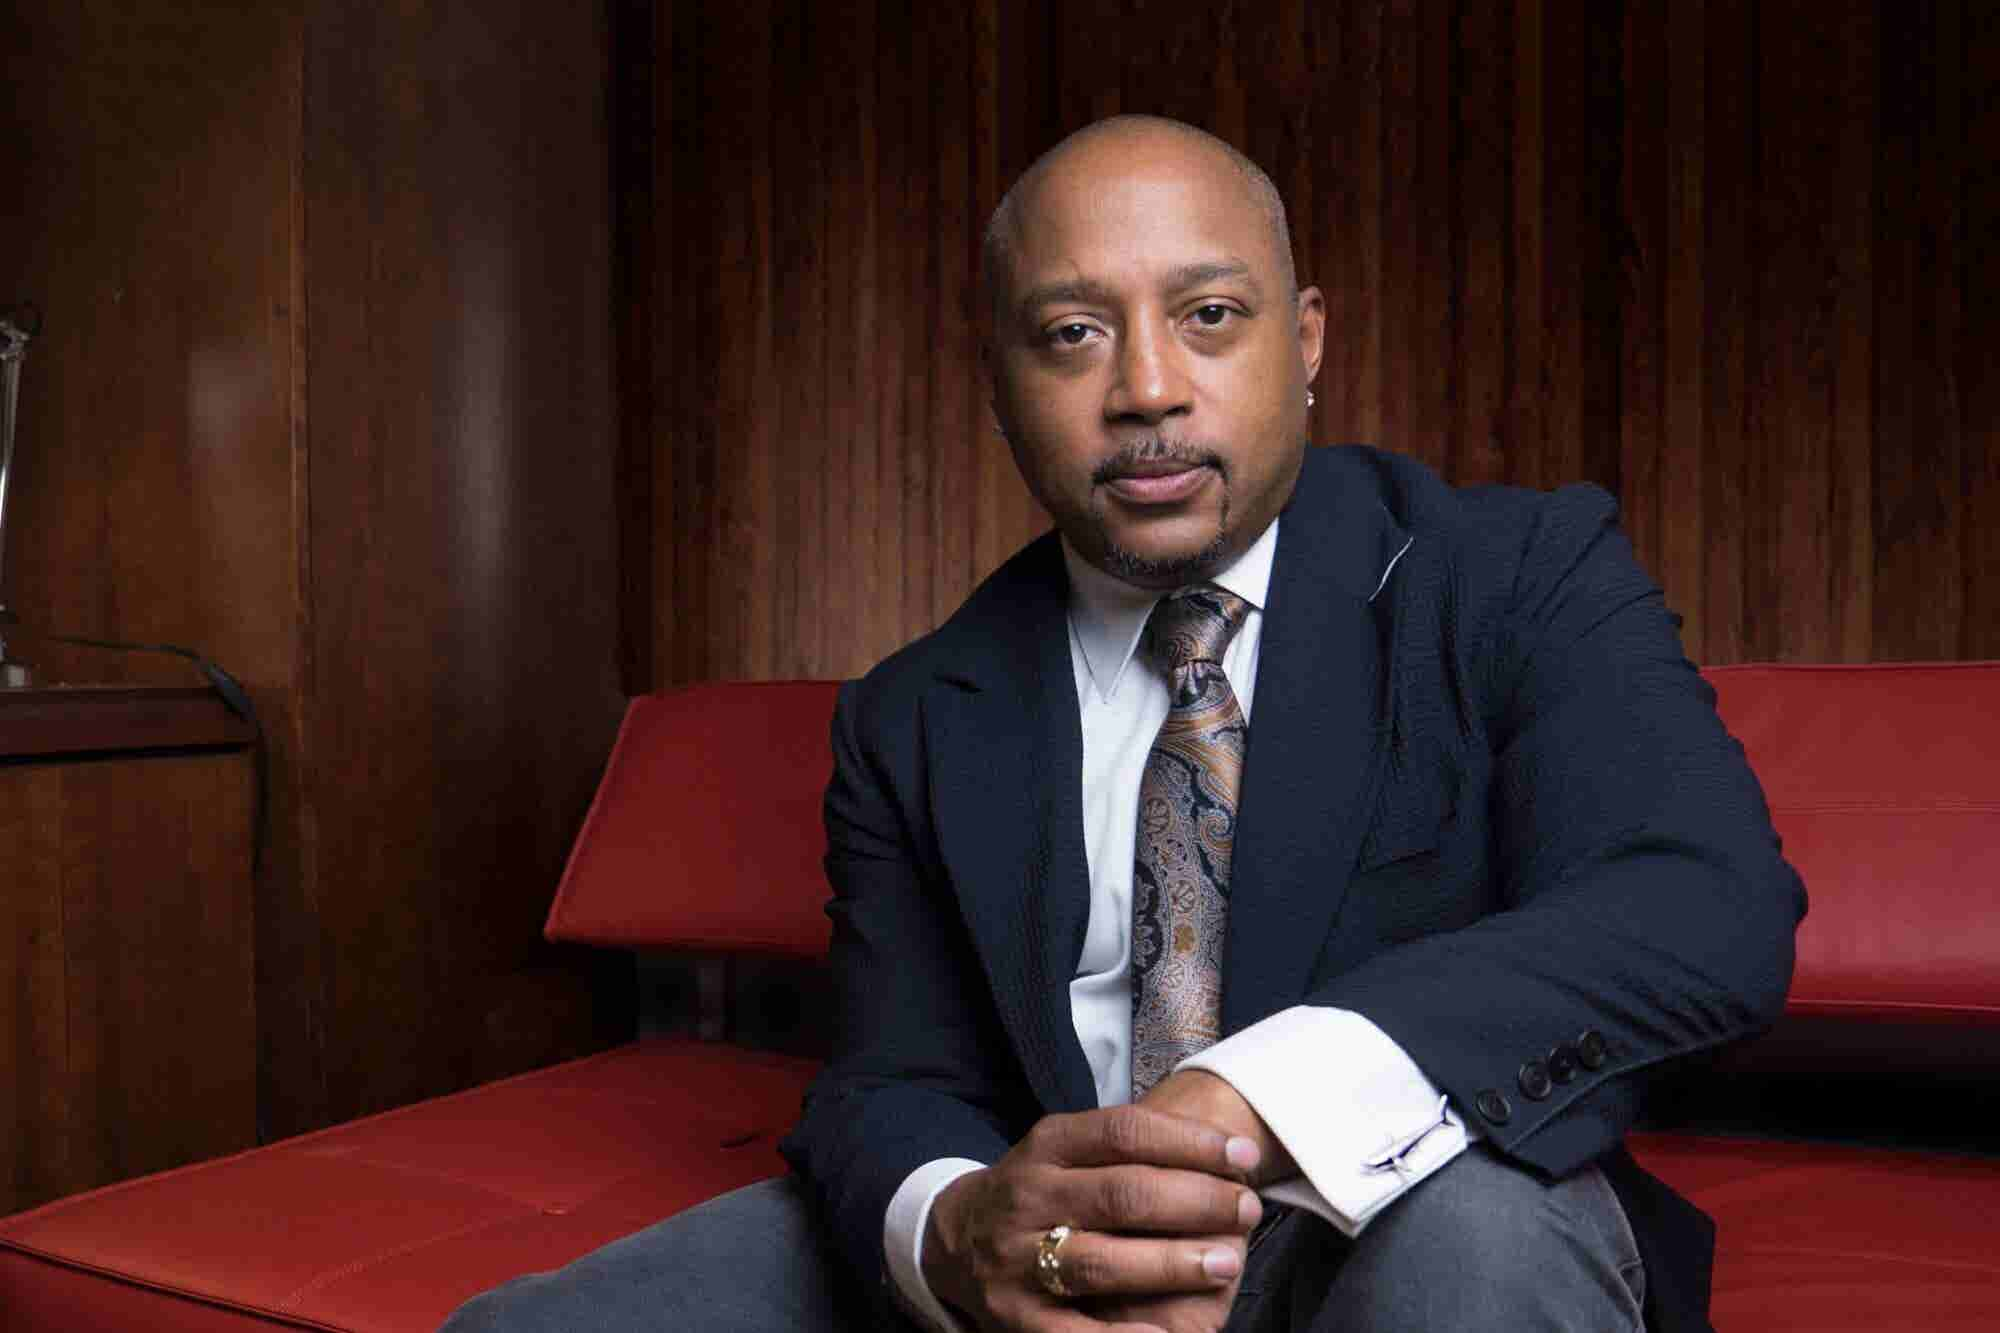 Daymond John: 5 Reasons Why Education Is the Key to Your Success